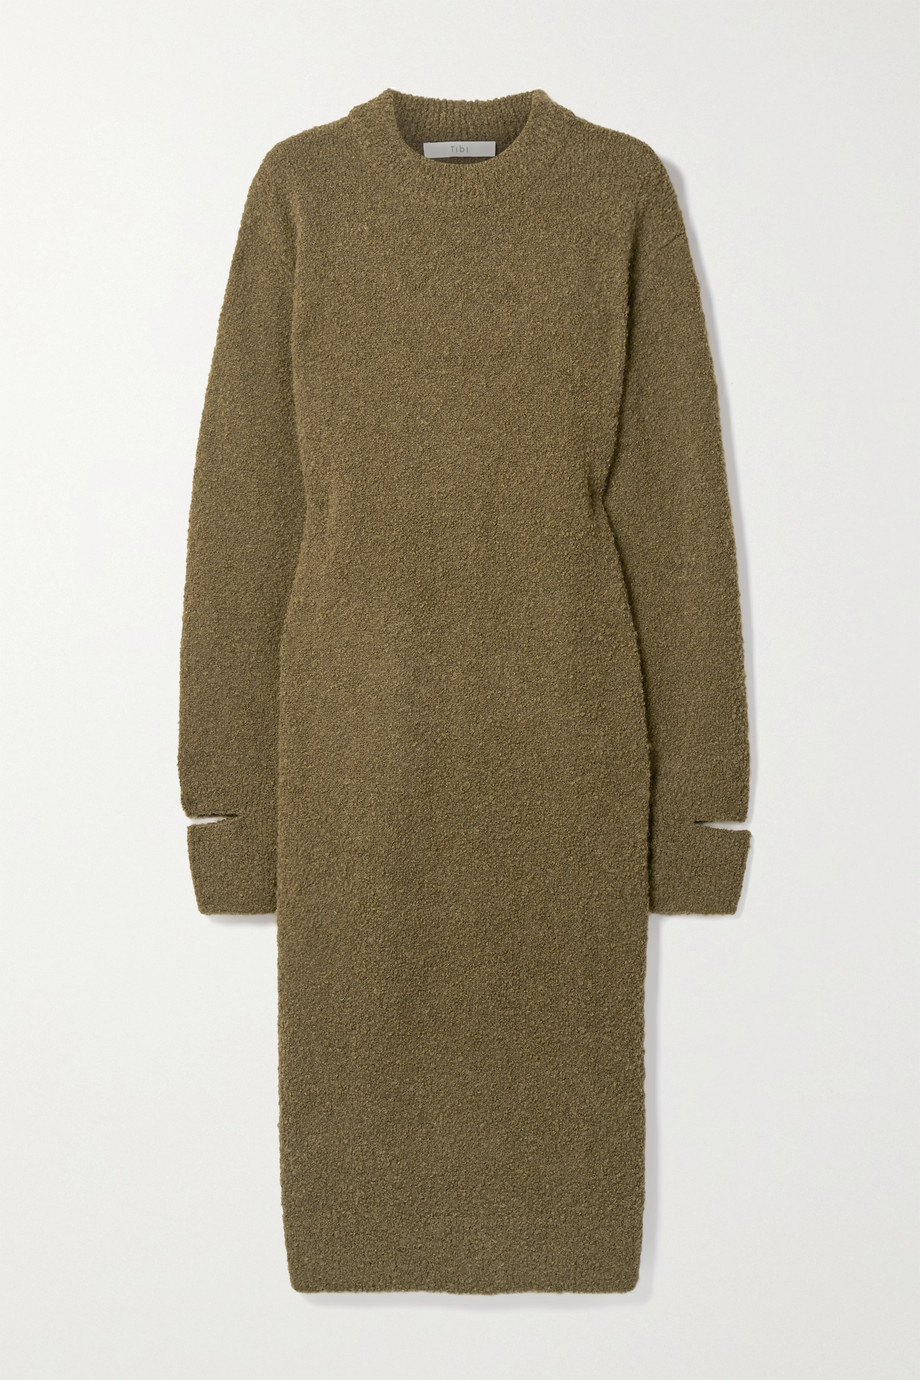 Tibi Alpaca-blend bouclé midi dress